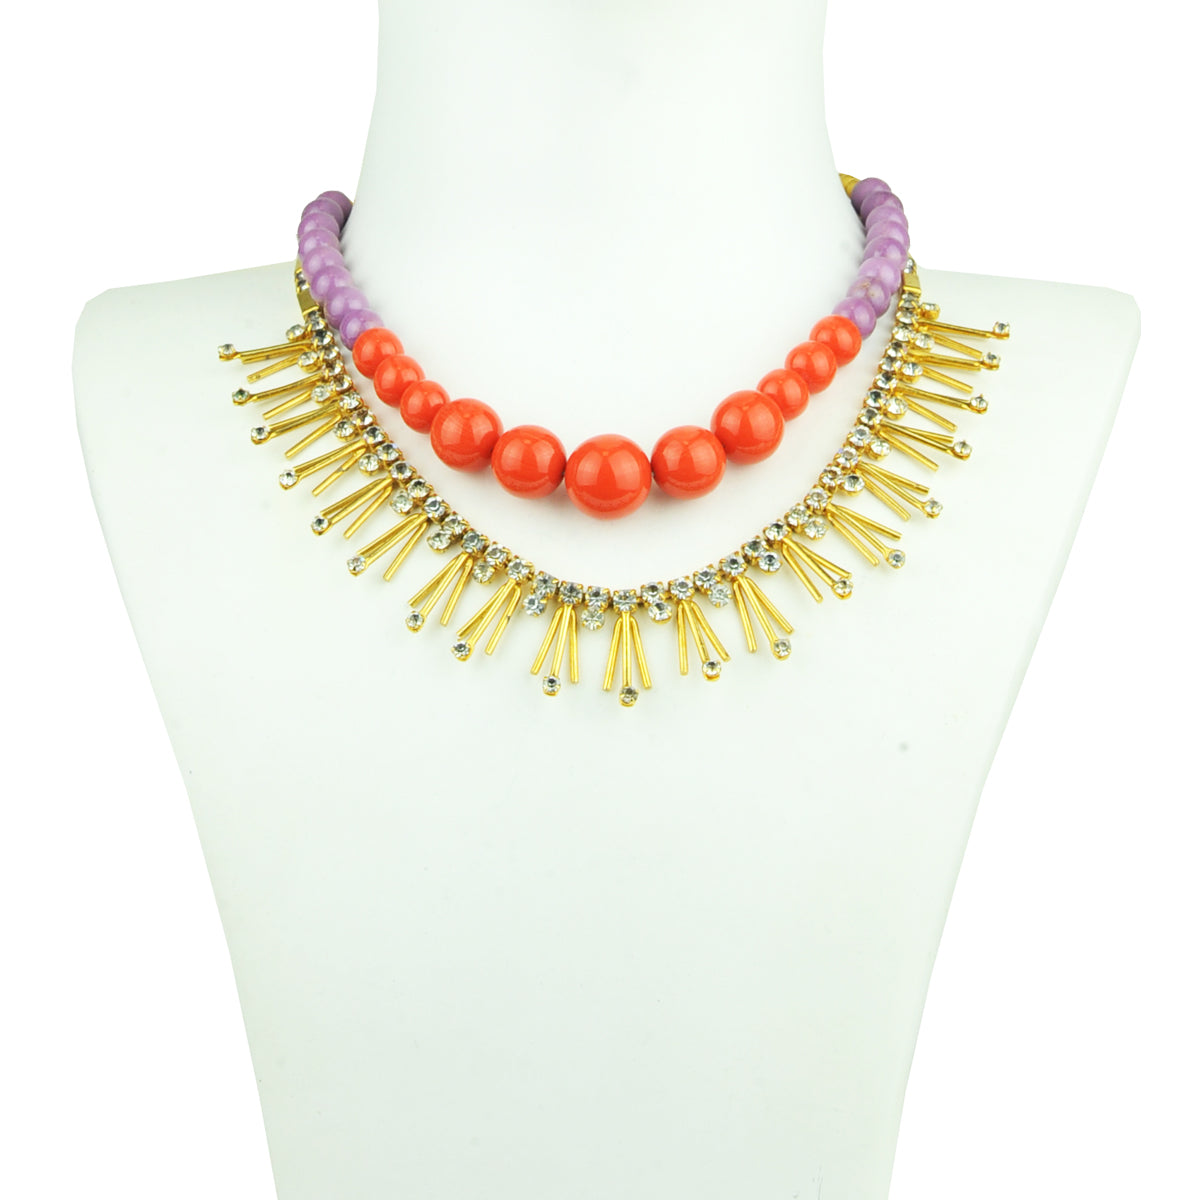 Eva Coral and Agate Short Necklace with Vintage Crystals